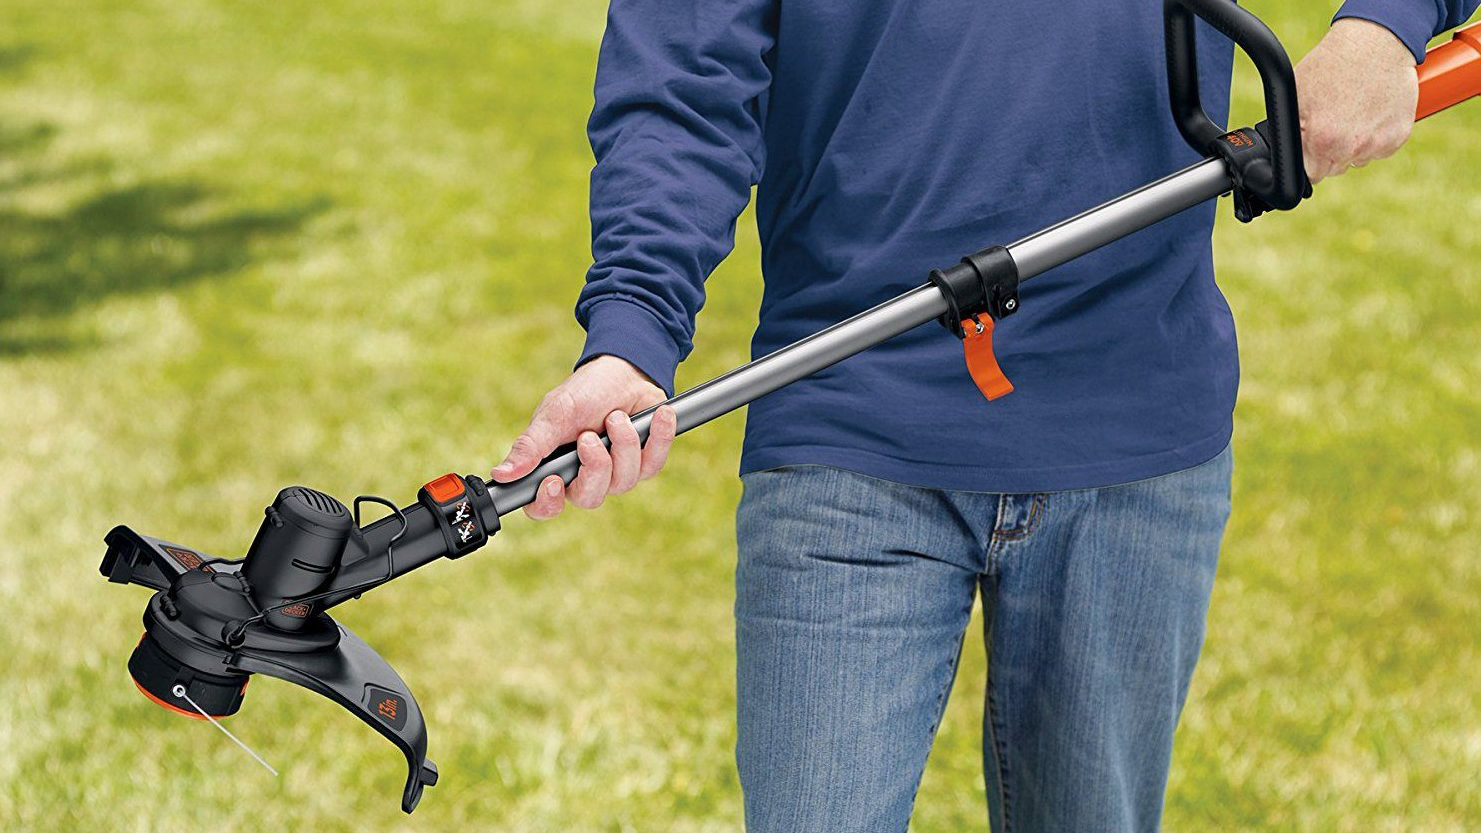 Best Electric Weed Eater 2019 - Cordless and Corded String